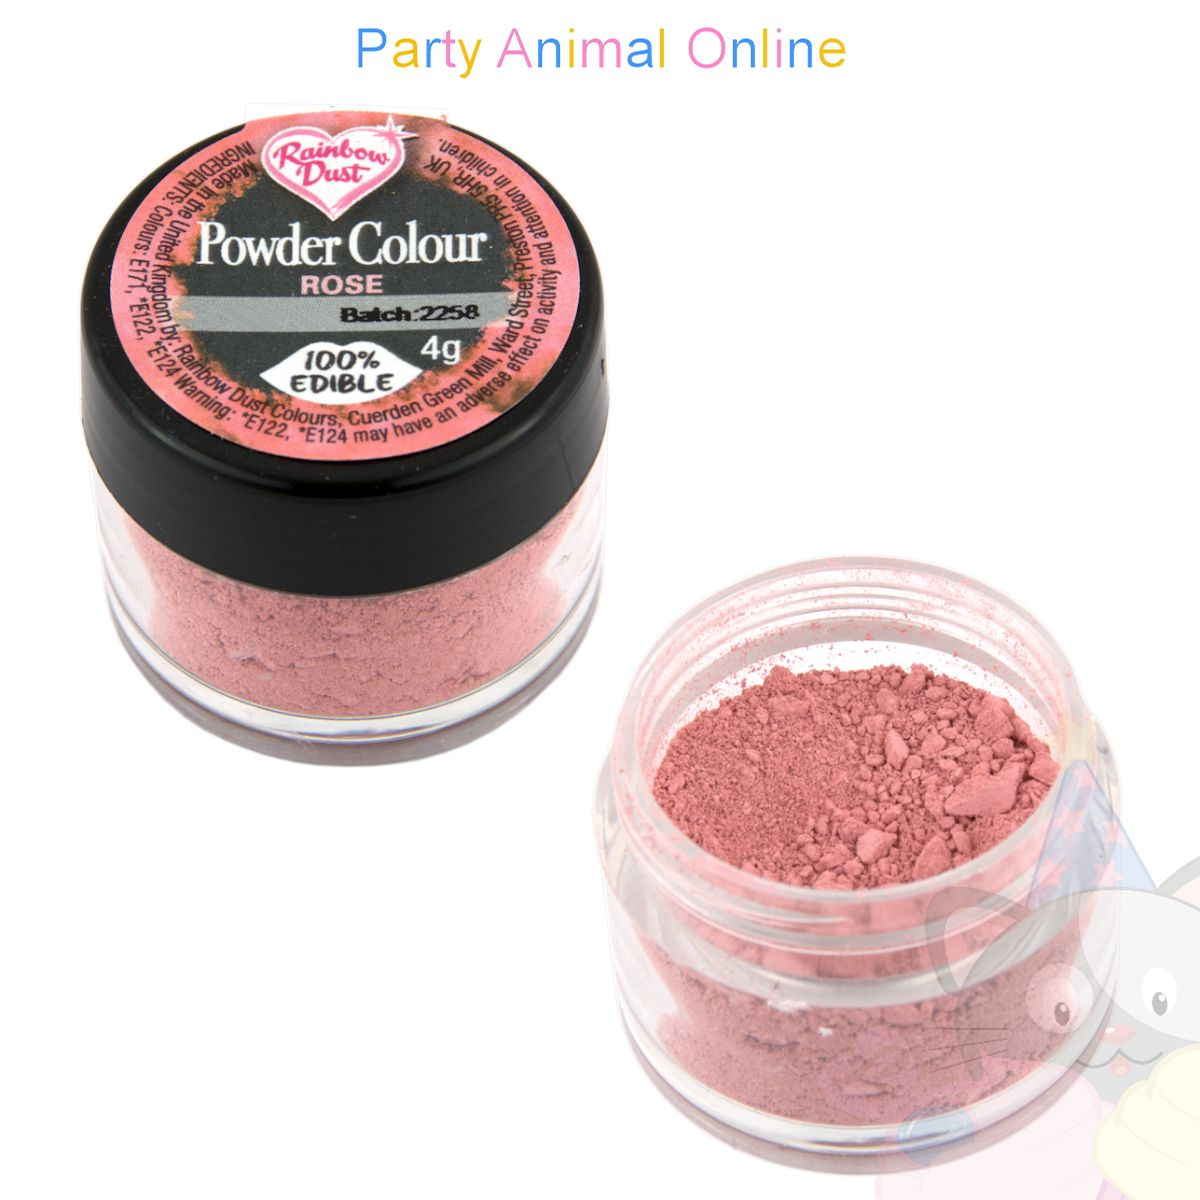 Rainbow Dust Powder Colour Range - ROSE